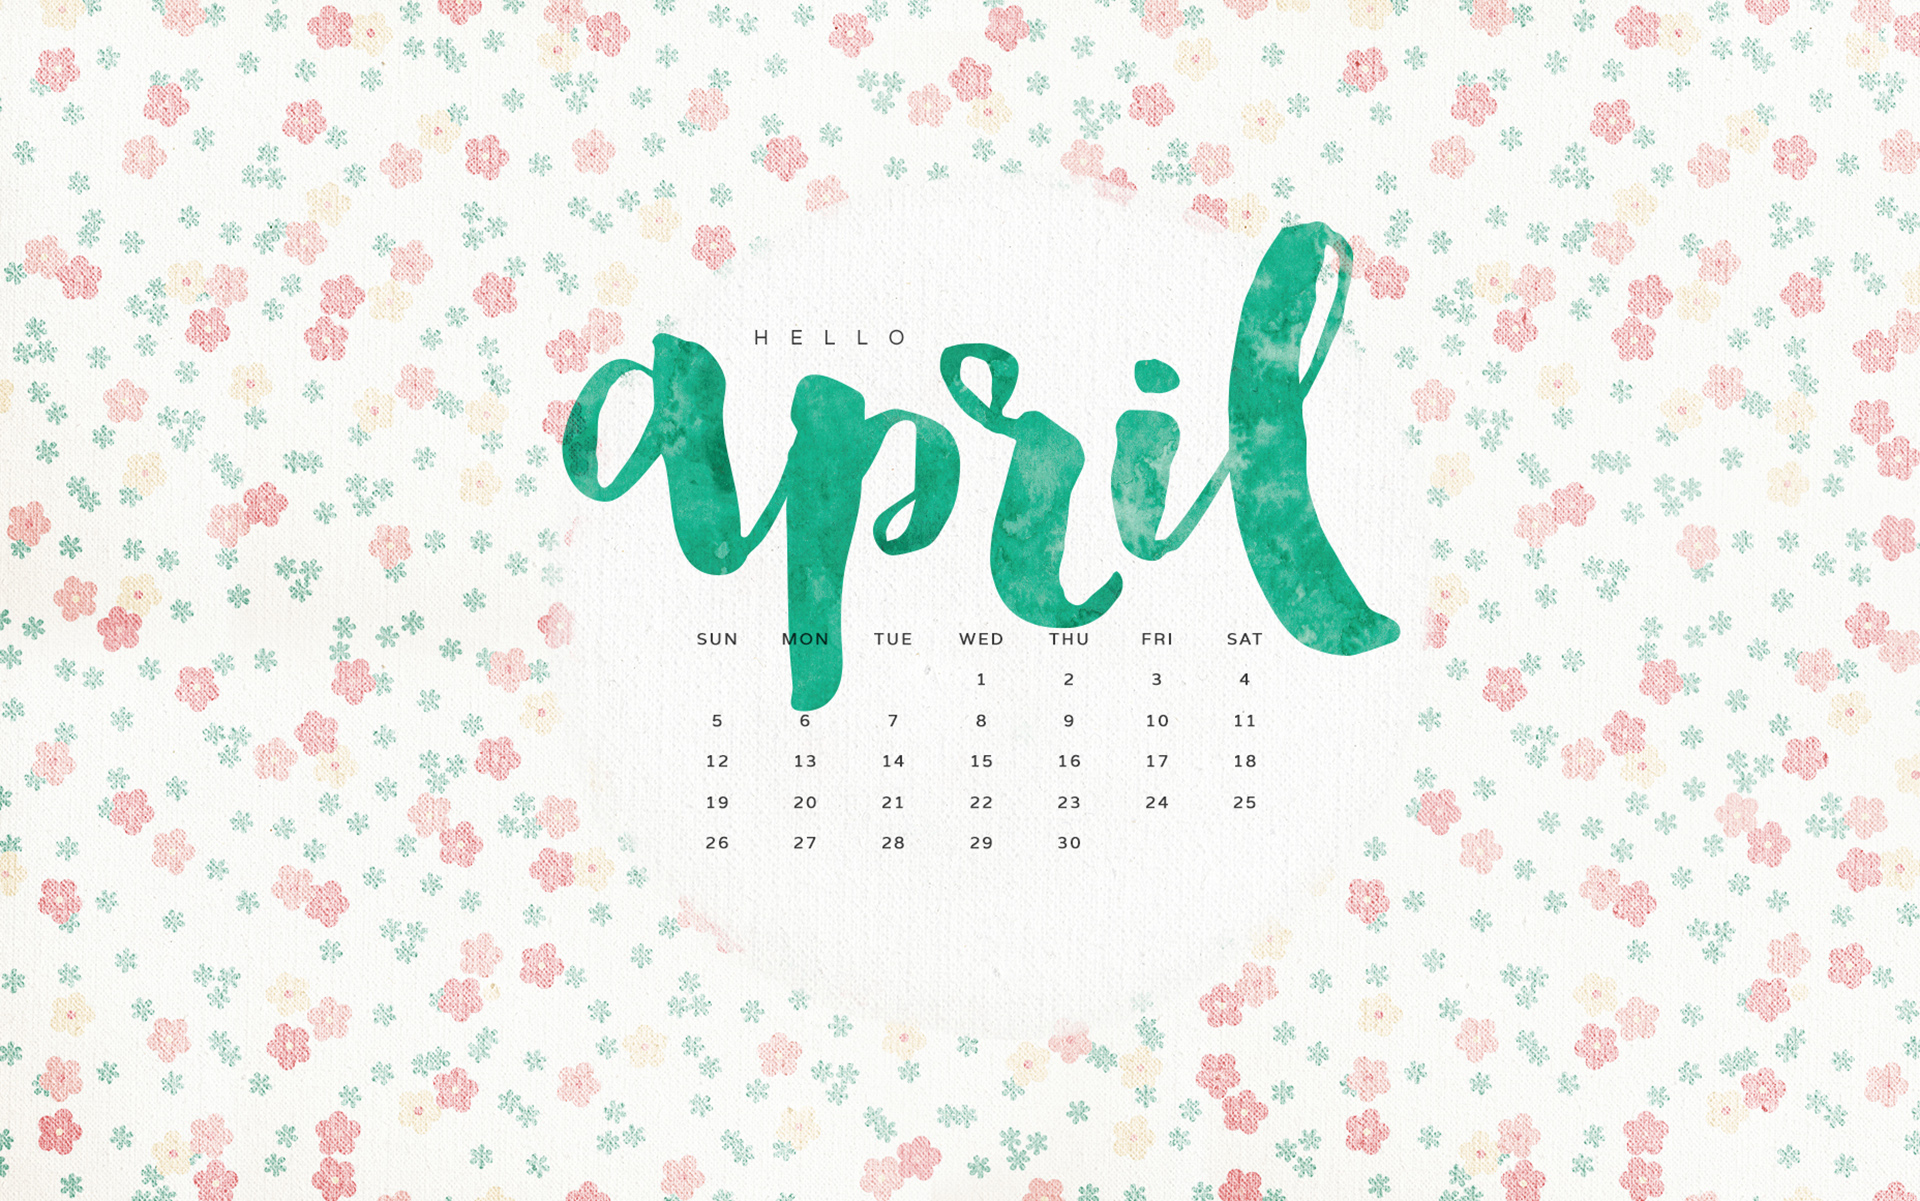 Wallpaper with April 2018 Calendar for PC iPad and SmartPhone 1920x1201